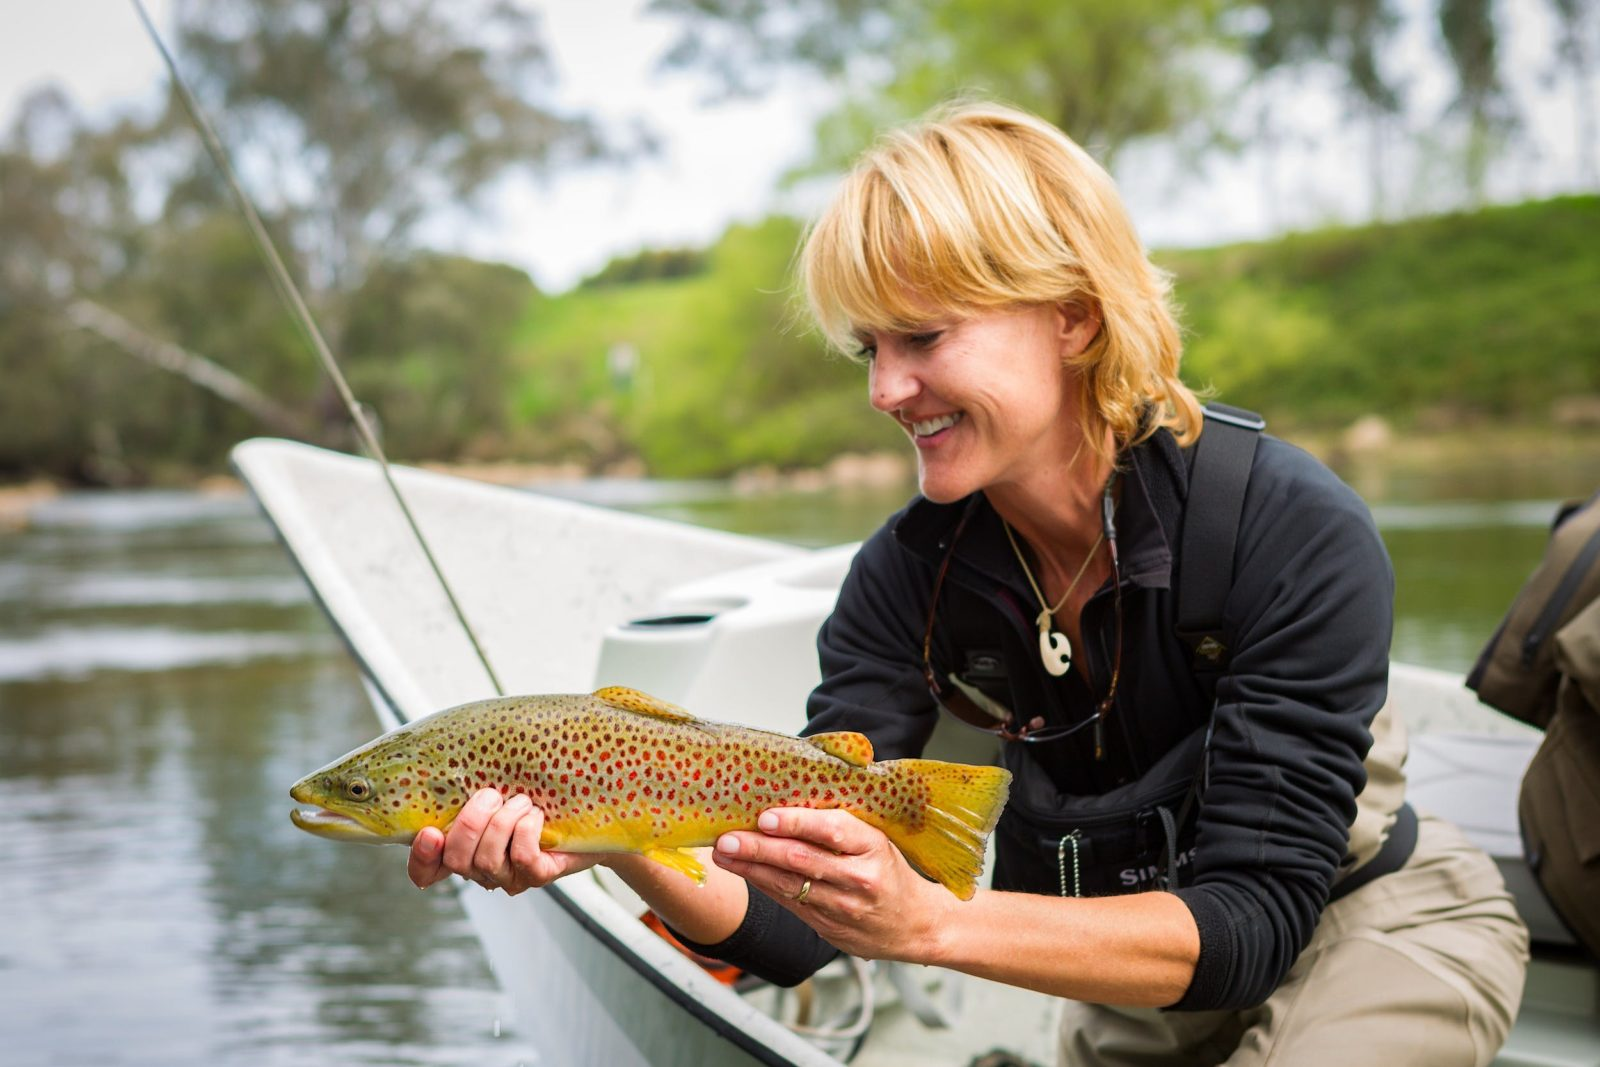 Lady gently cradling a brown trout just prior to release